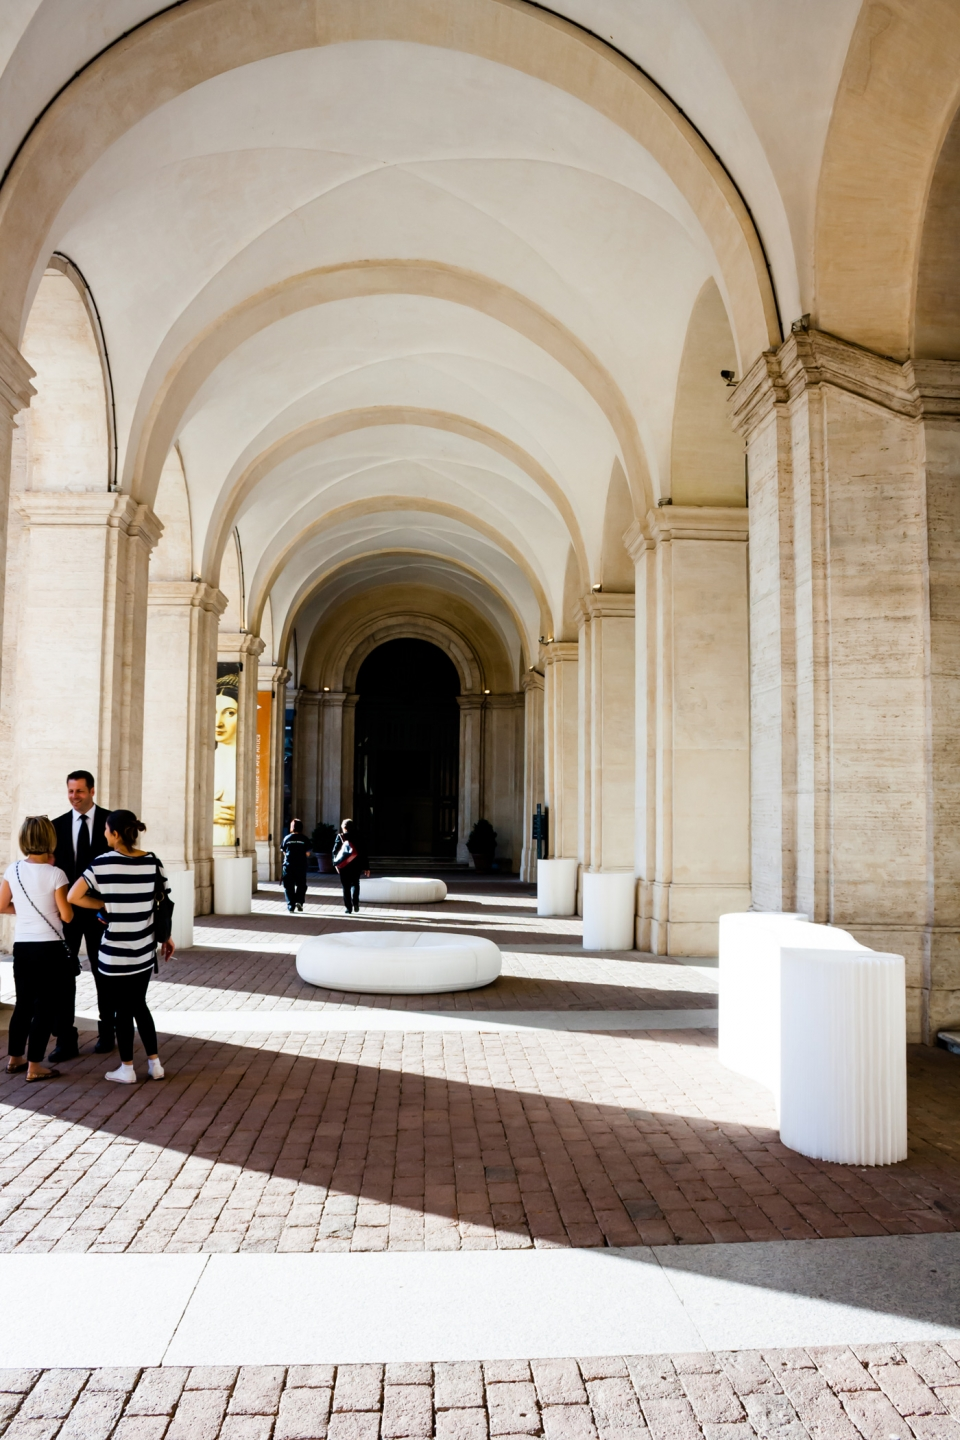 molo white textile softblocks and lounger softseating at the Chamber Music Festival 2013 in Rome